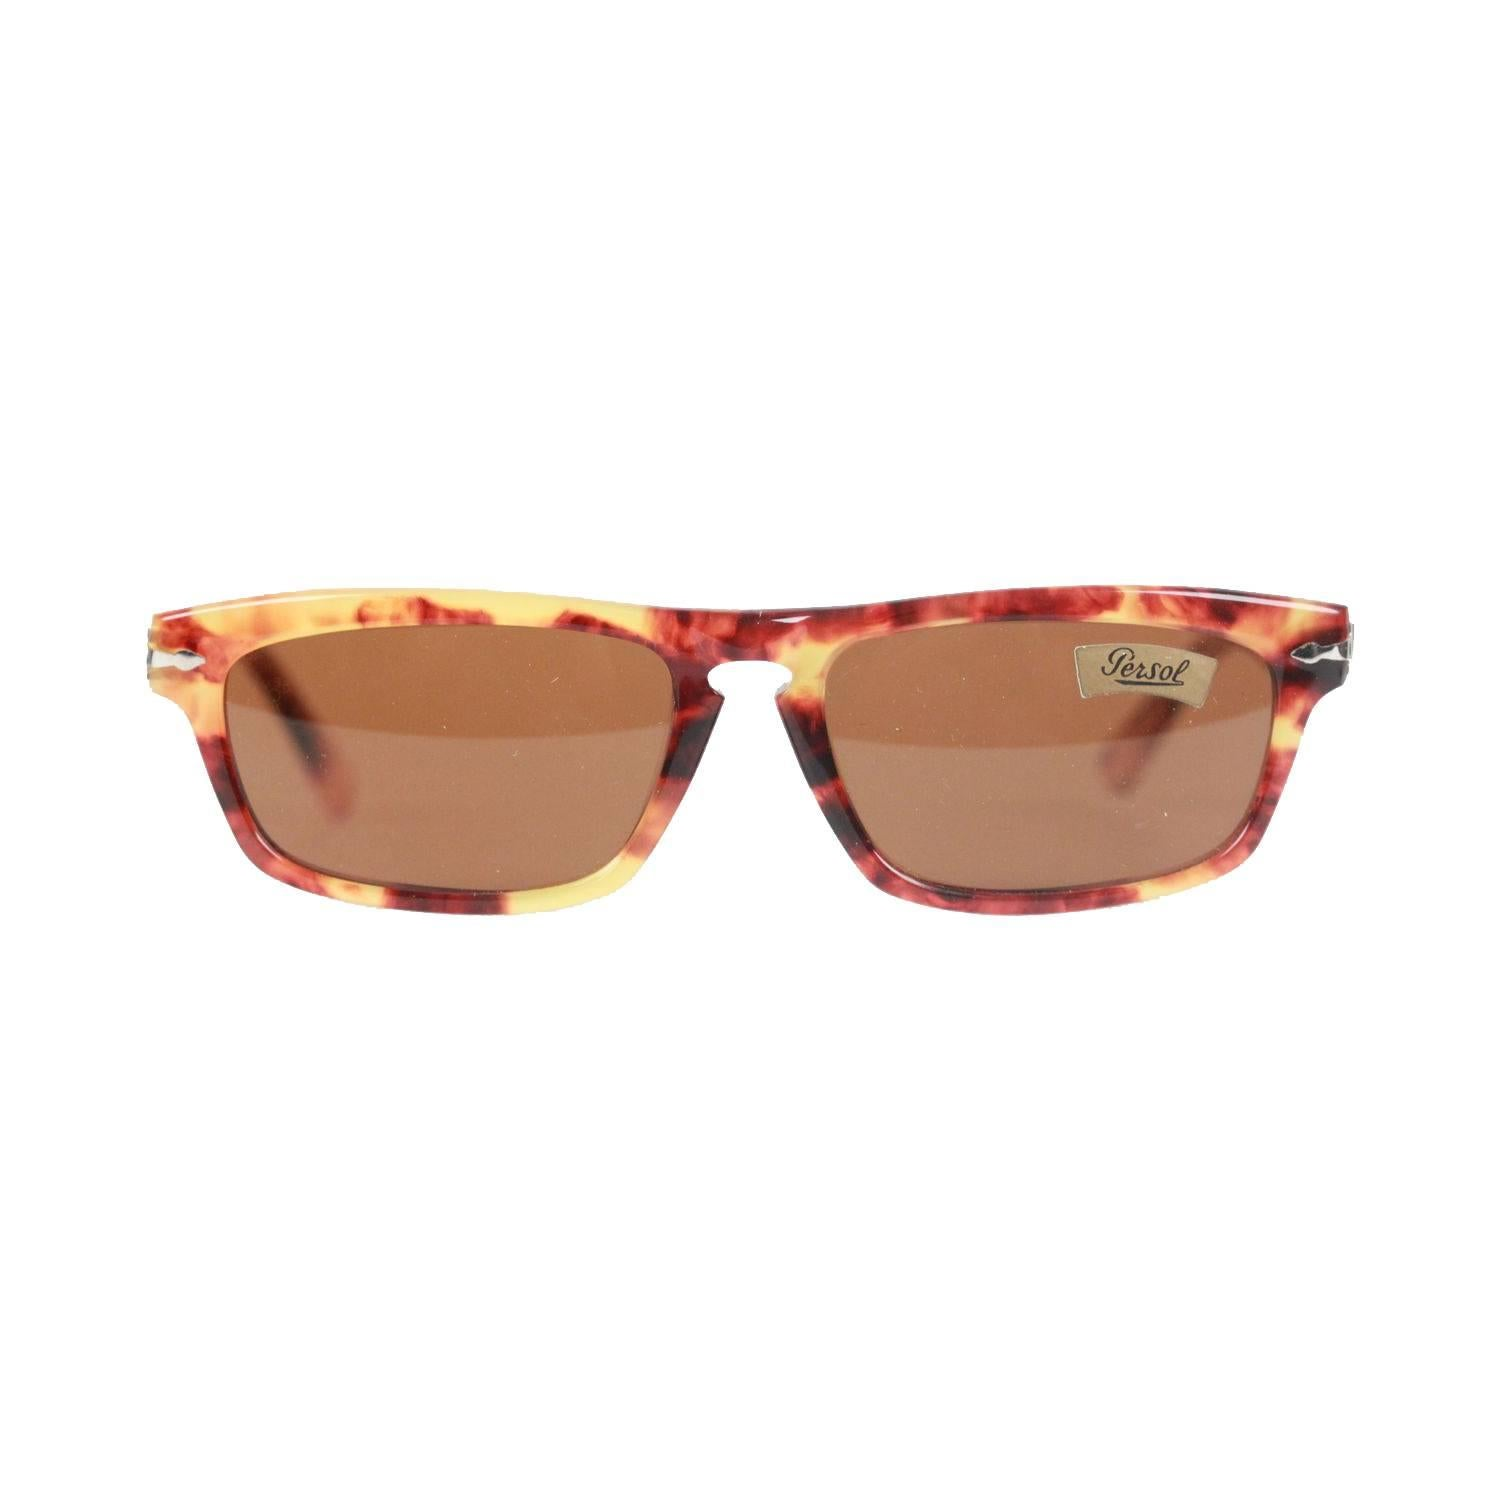 807c0a4b6f570 Persol Ratti Vintage Brown Meflecto PP 507 56mm Sunglasses For Sale at  1stdibs